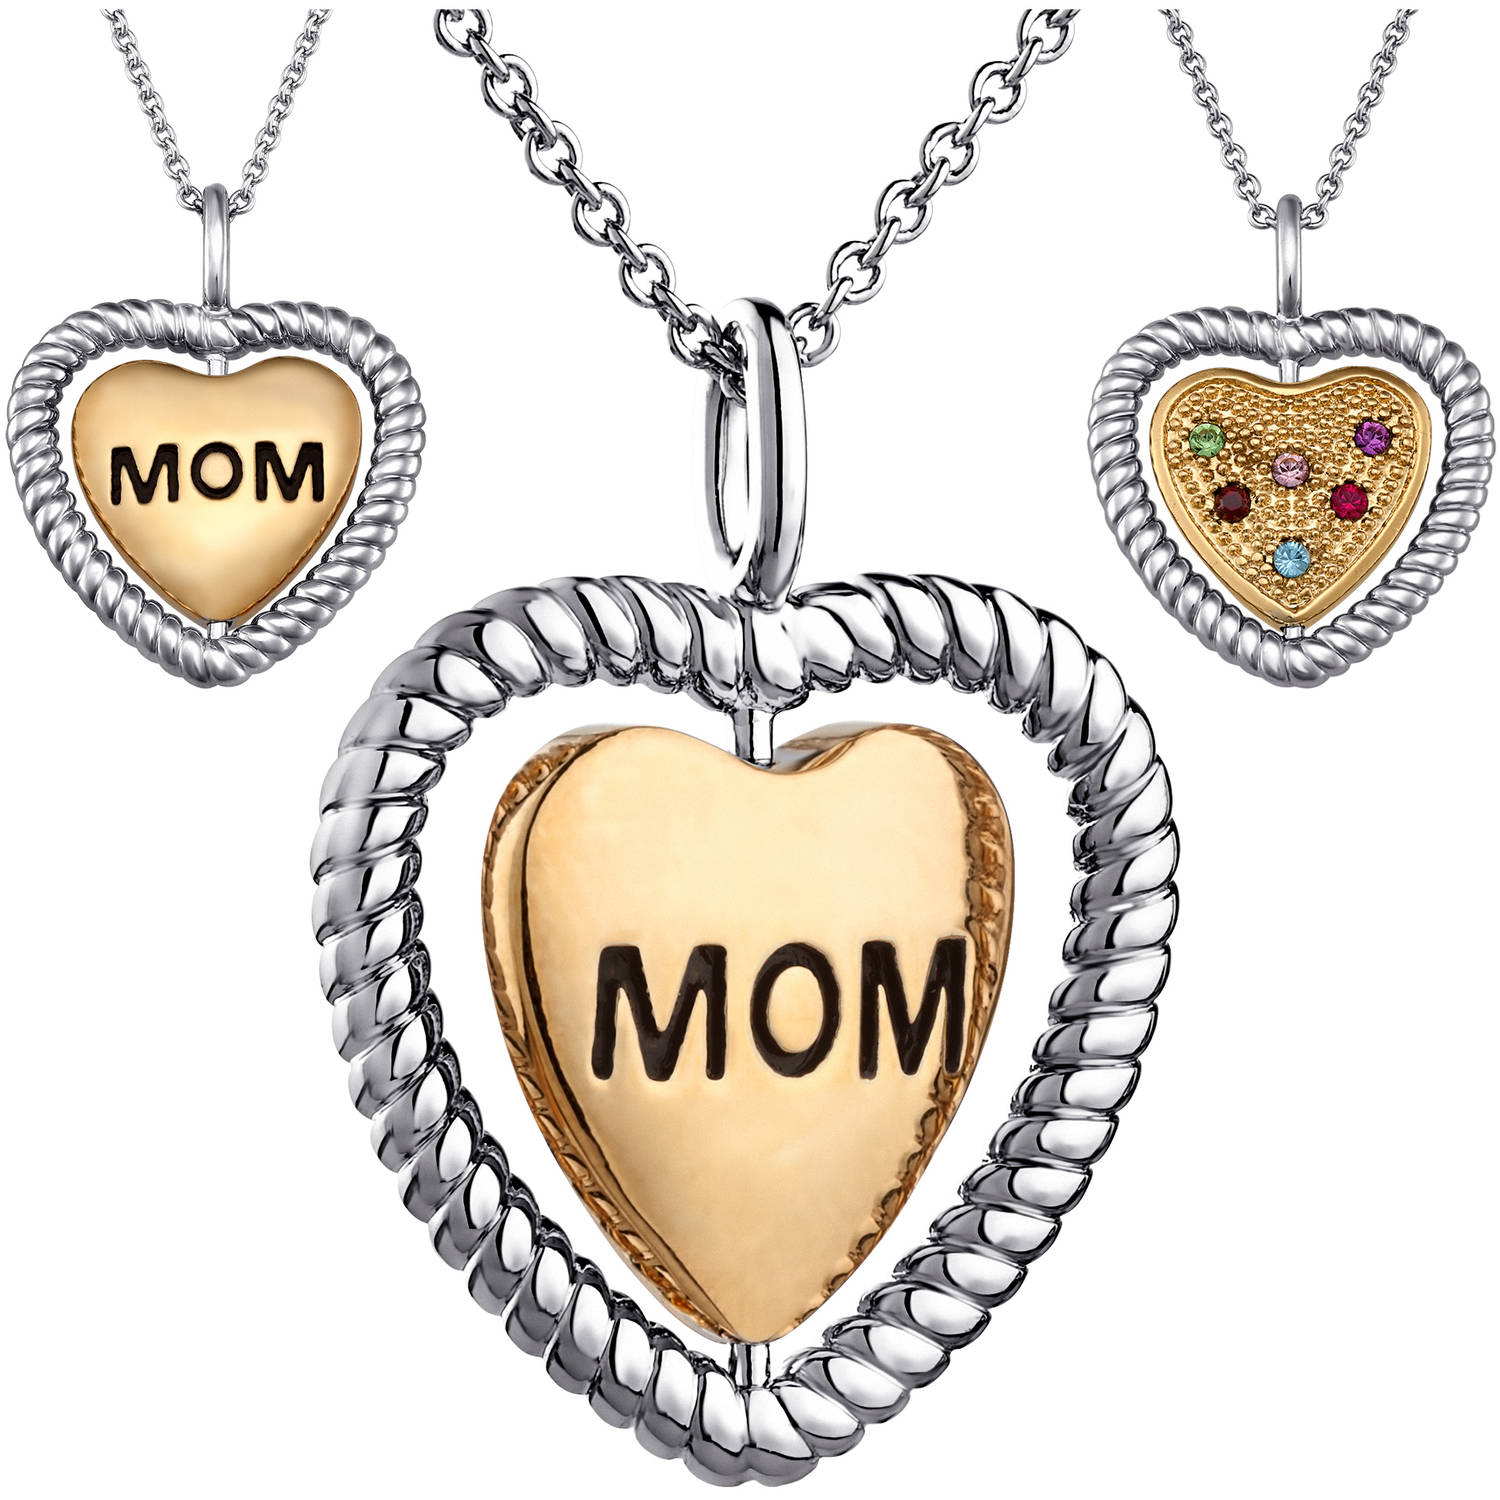 Personalized Two-Tone Mom Birthstone Heart Spinner Pendant